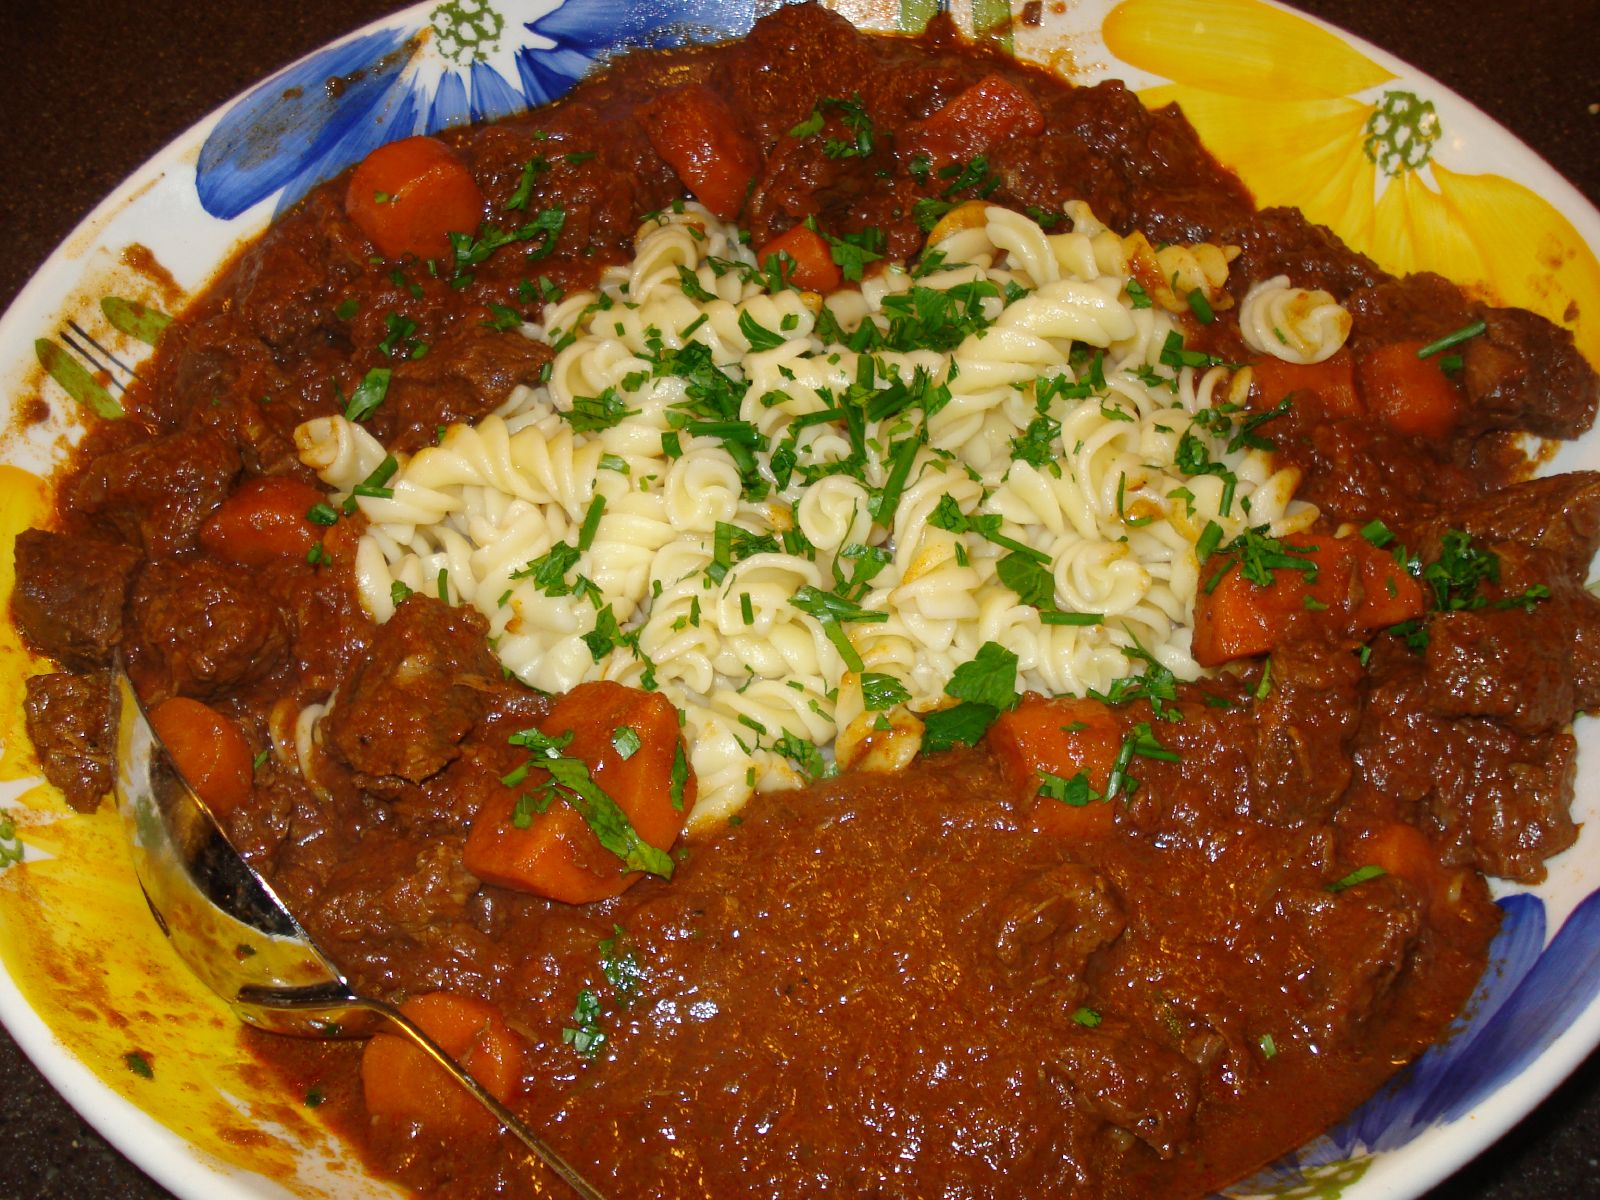 File:Hungarian Goulash2.jpg - Wikipedia